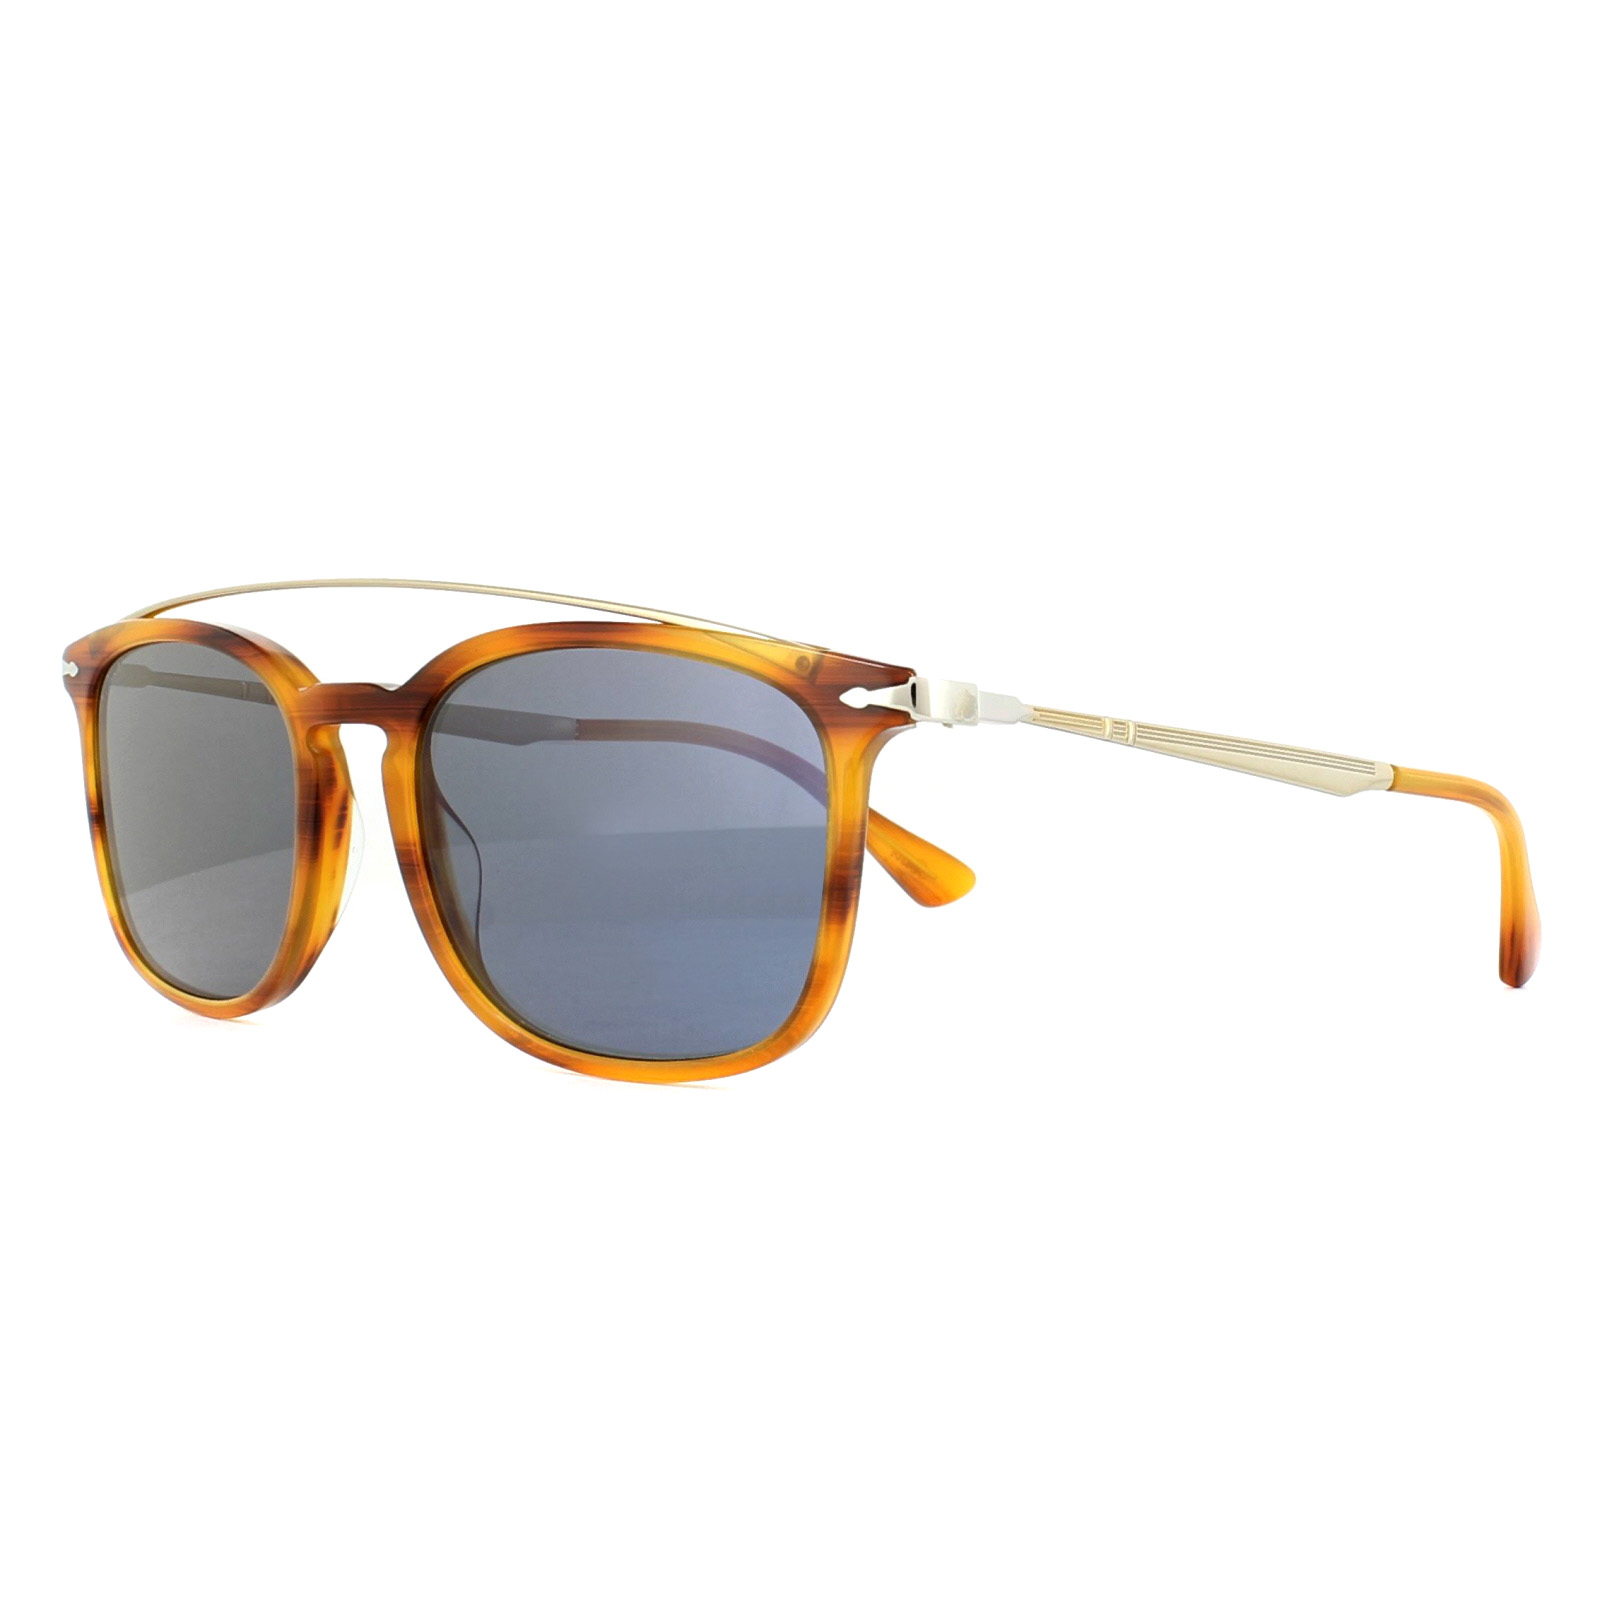 1aa233345a Persol Sunglasses 3173S 960 56 Striped Brown Blue 8053672764383